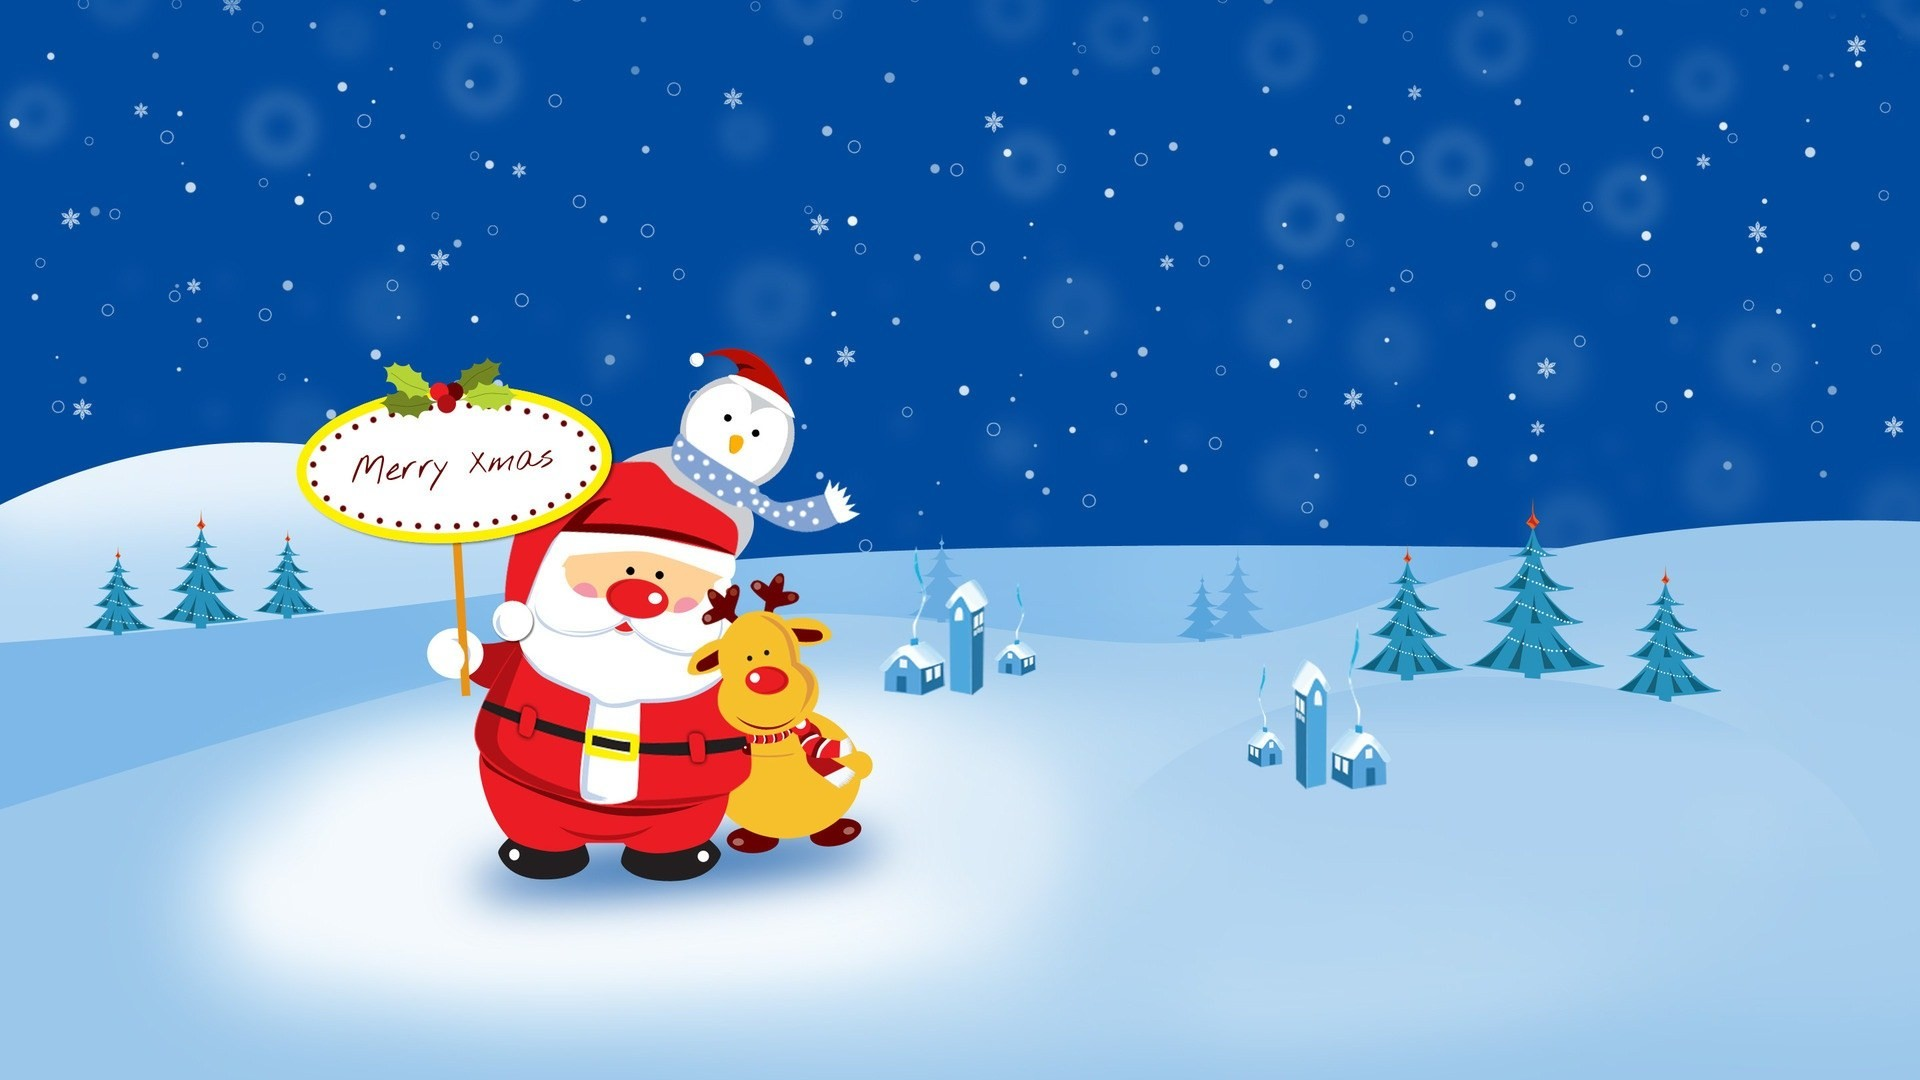 … animated-christmas-wallpapers-free-download-12 …